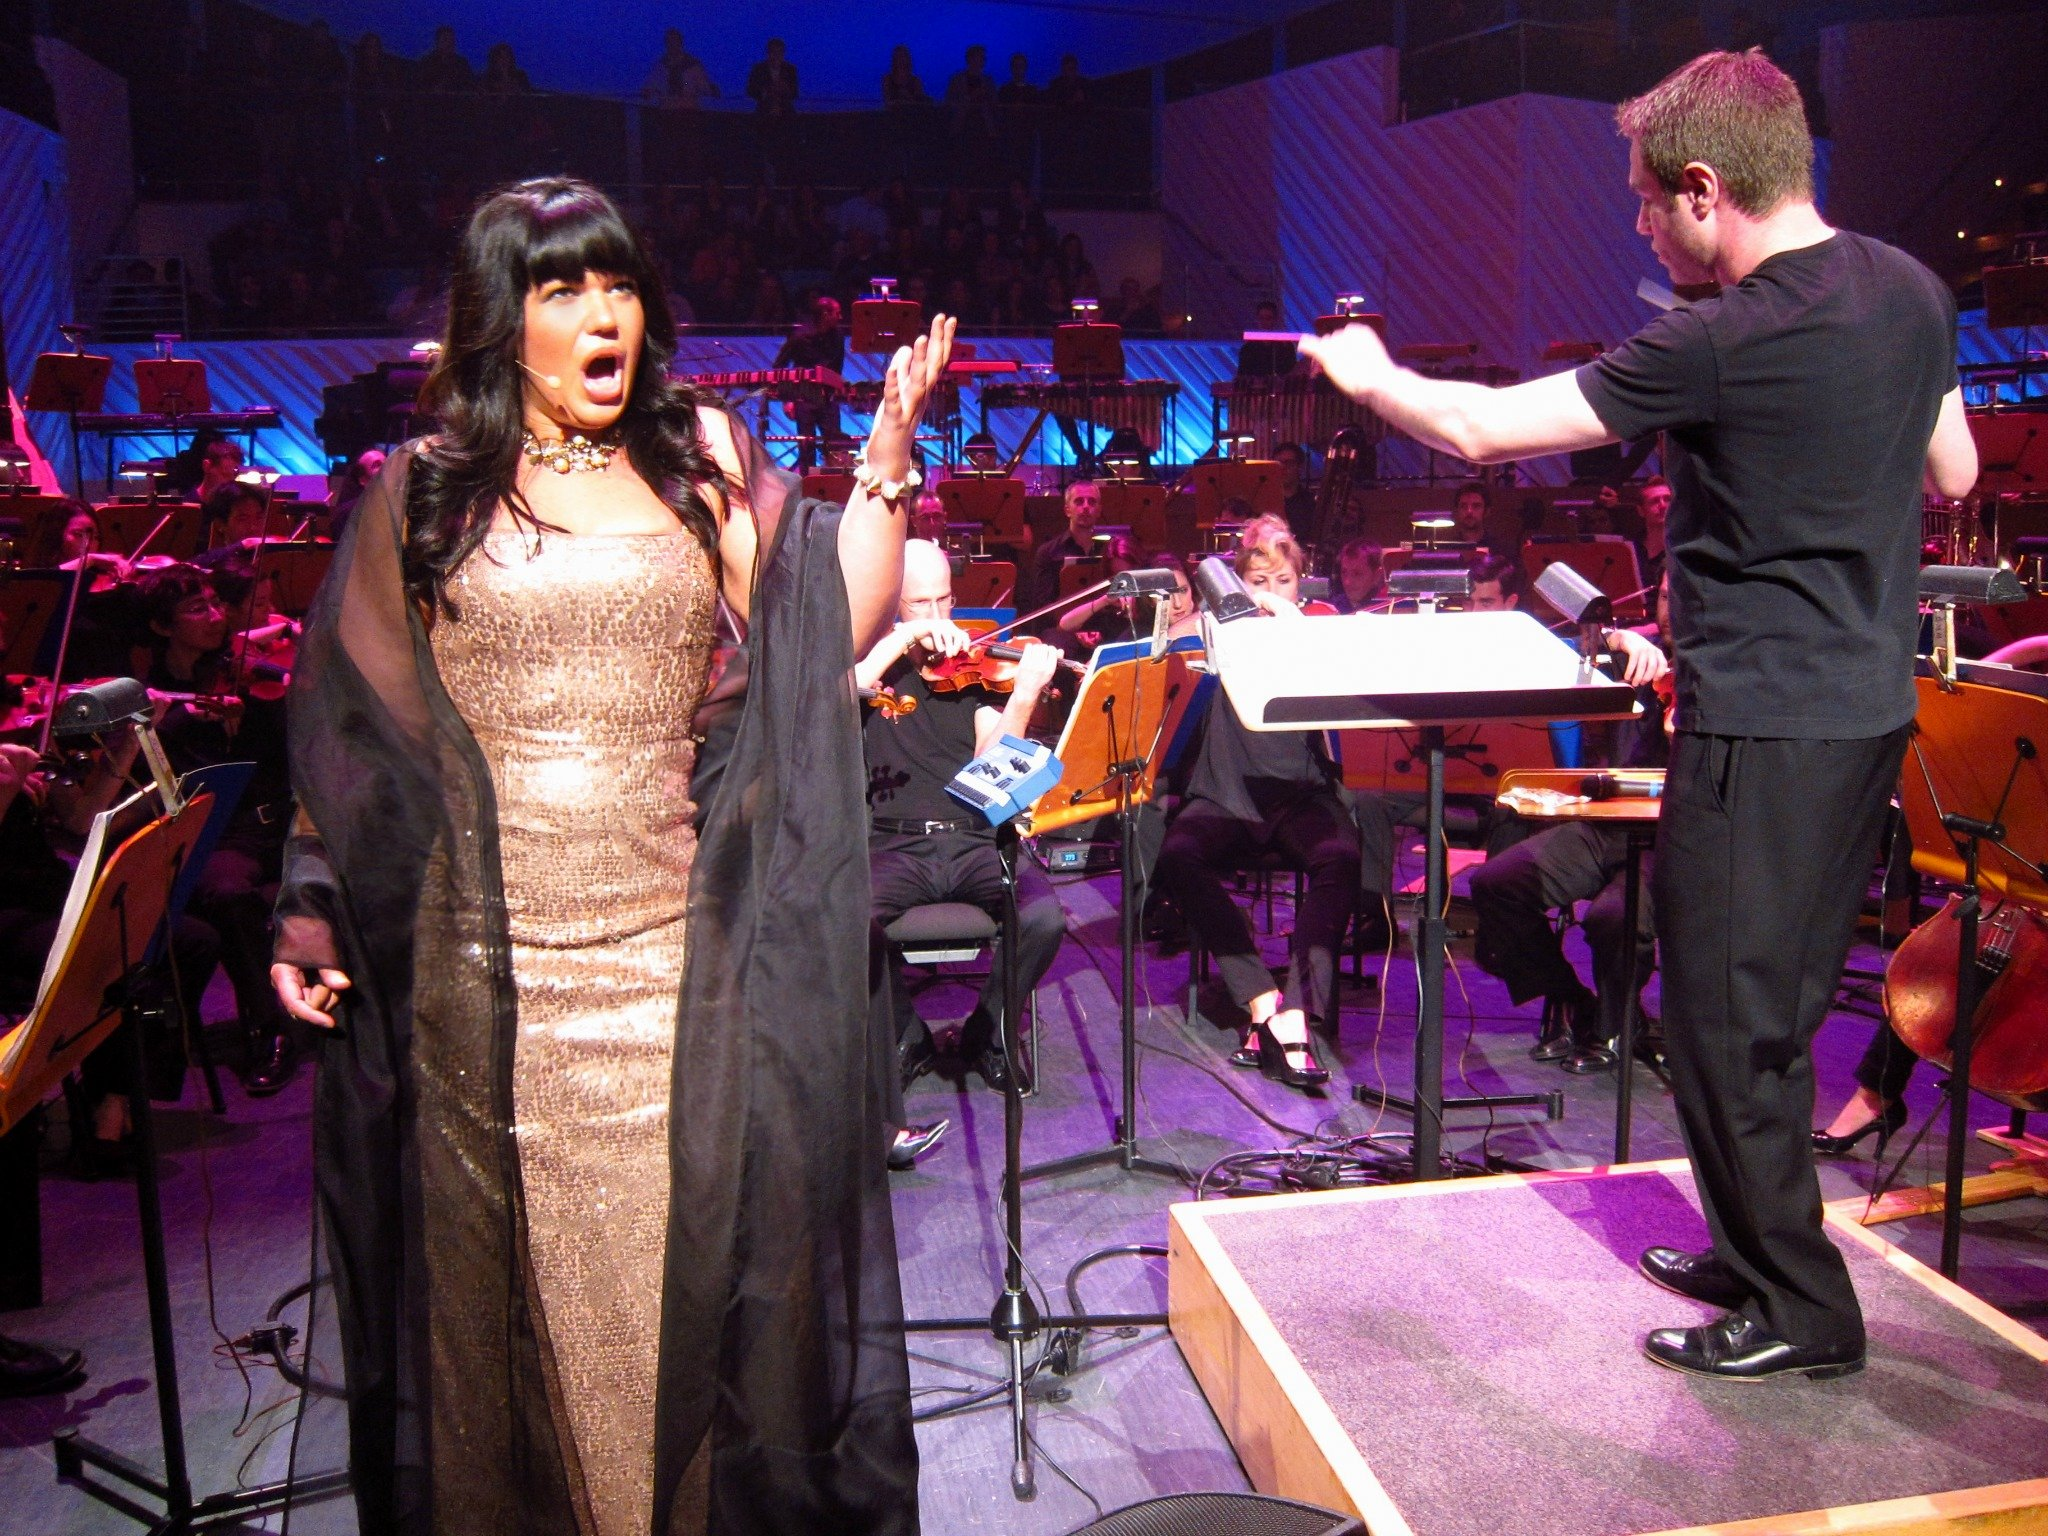 Concert at New World Symphony - Photo by Flash Life Miami